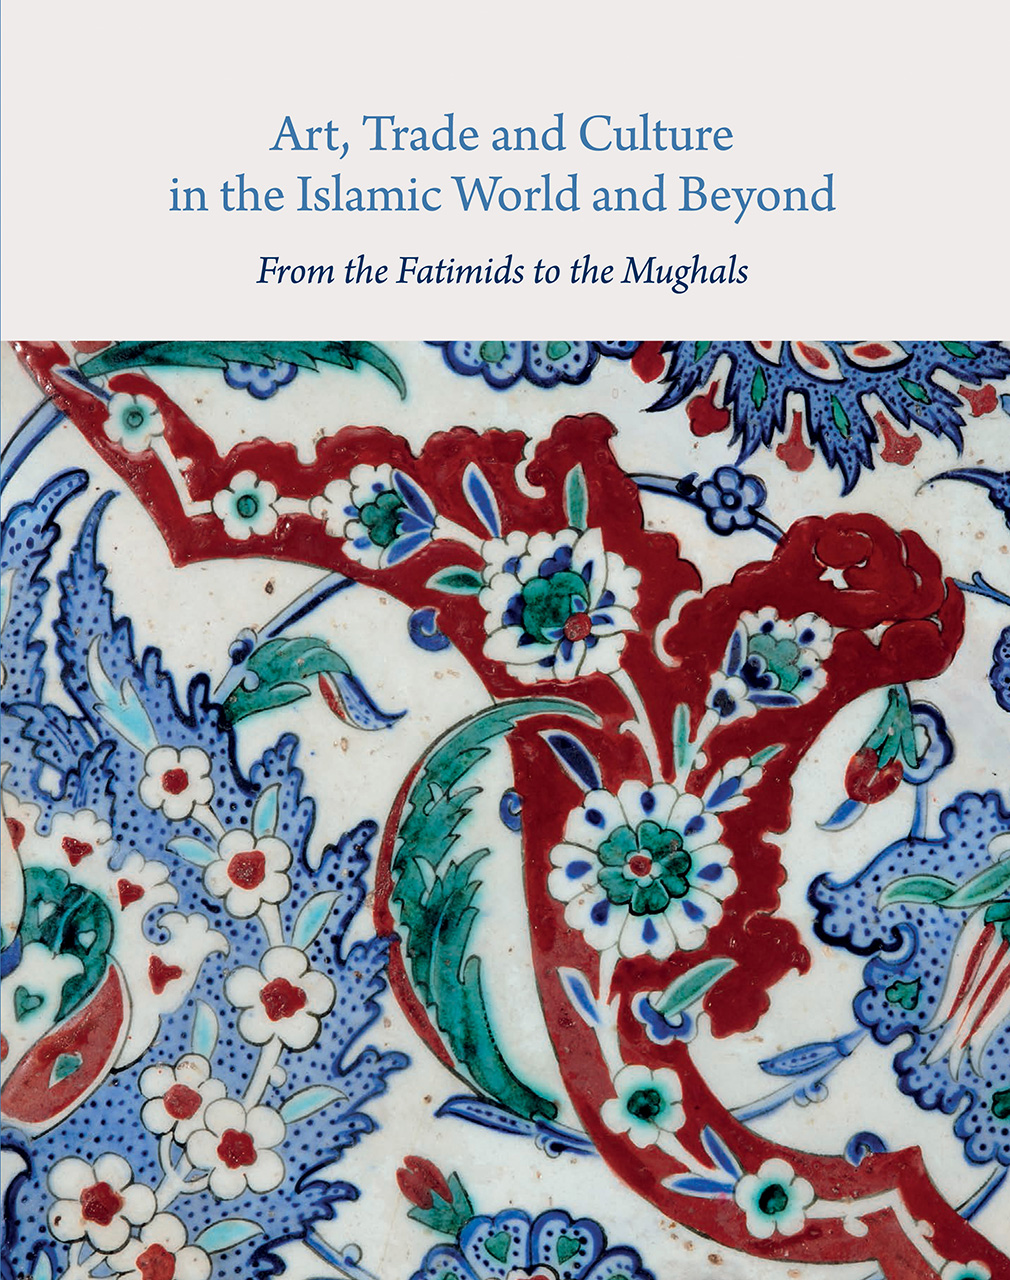 Art, Trade, and Culture in the Islamic World and Beyond: From the Fatimids to the Mughals